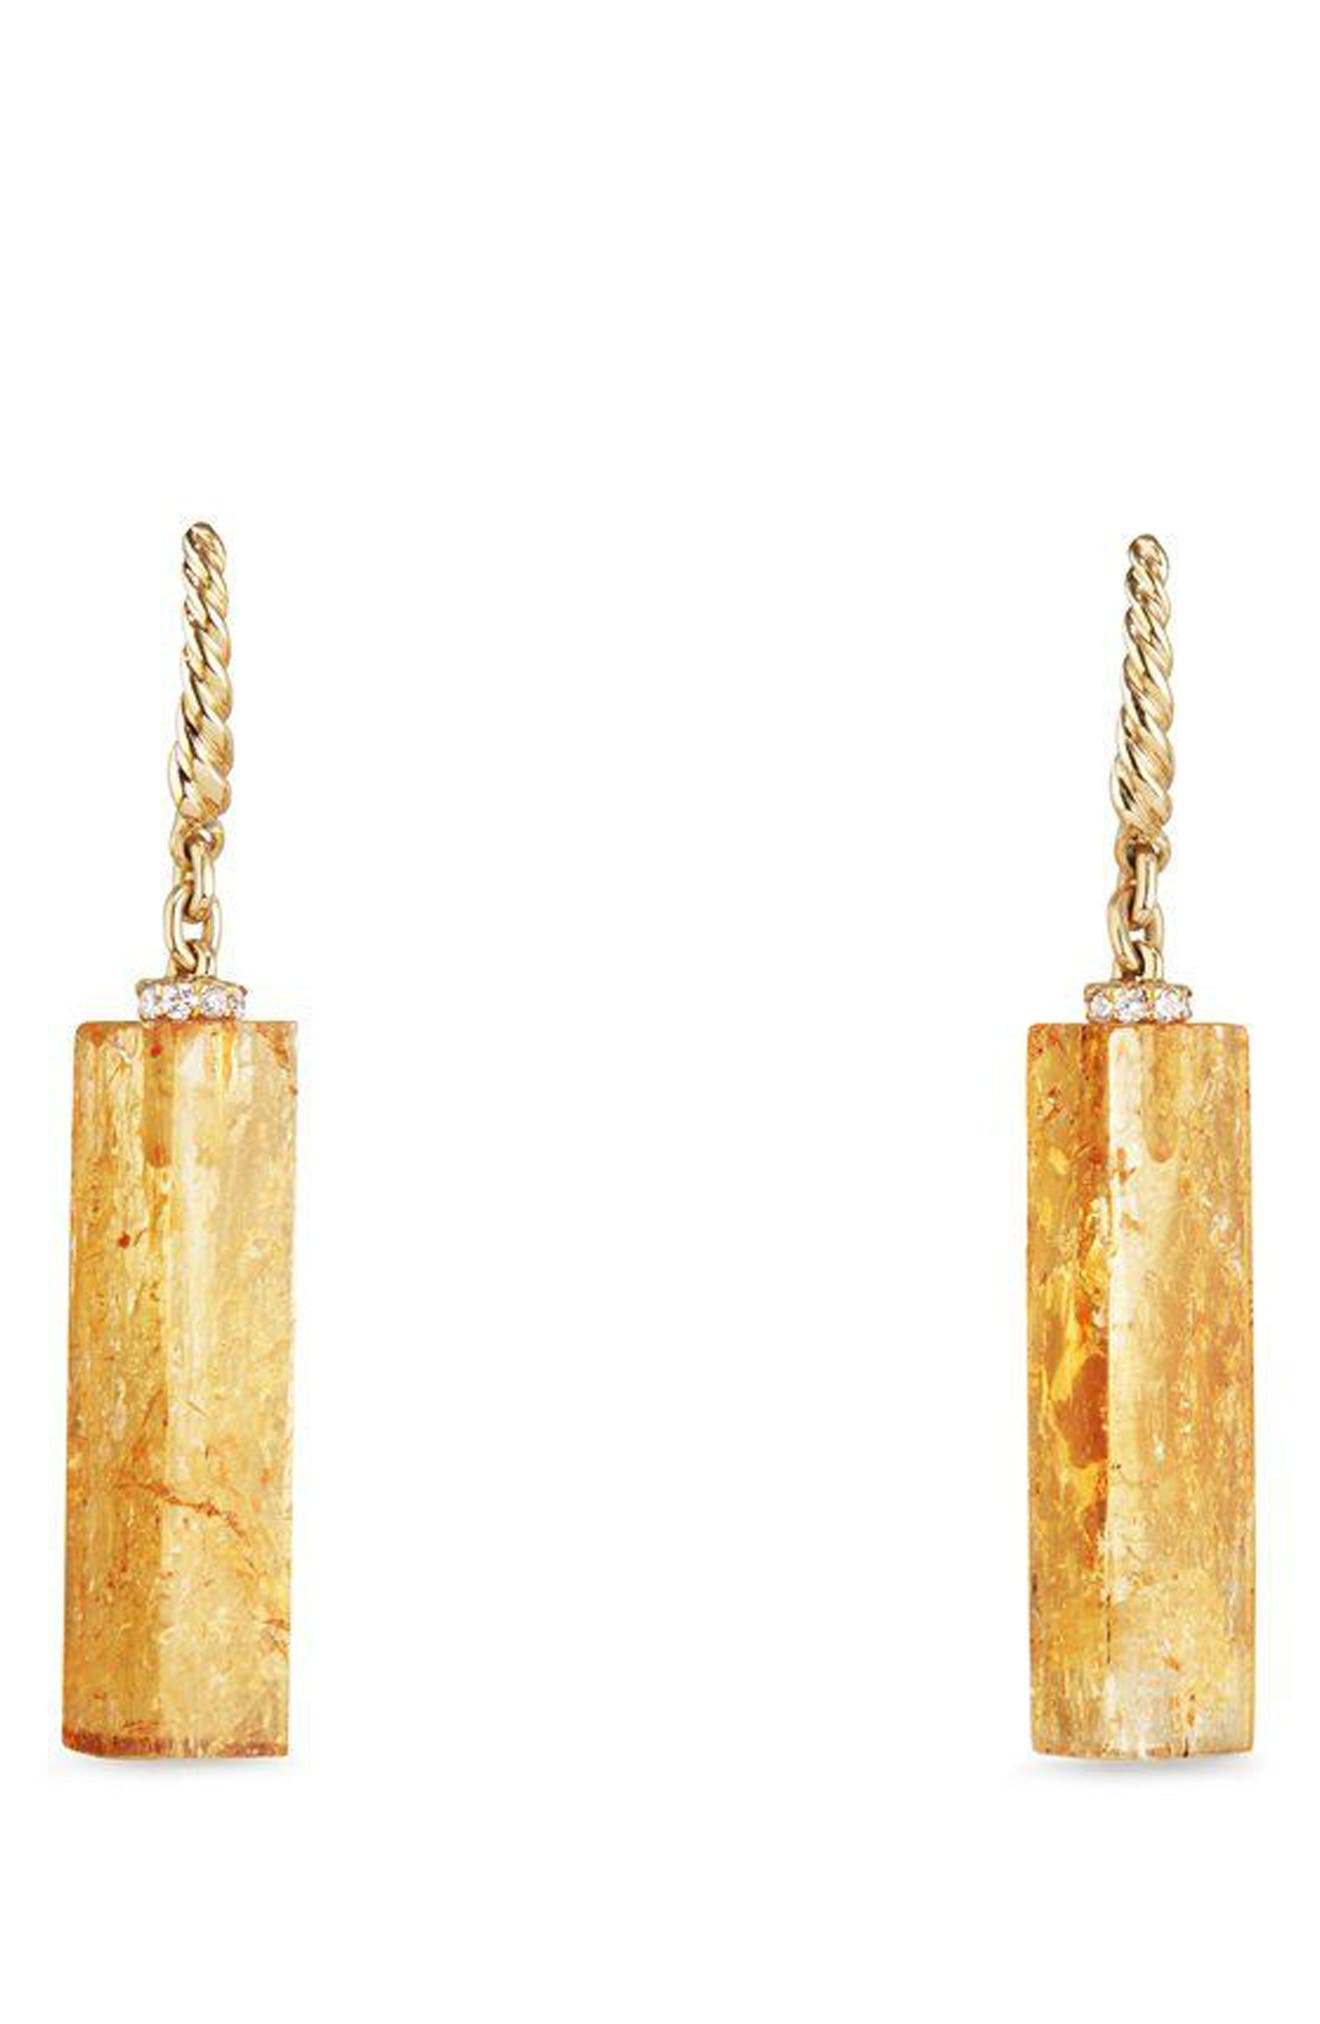 Bijoux Fine Bead and Chain Earrings with Imperial Topaz,                         Main,                         color, GOLD/ IMPERIAL TOPAZ